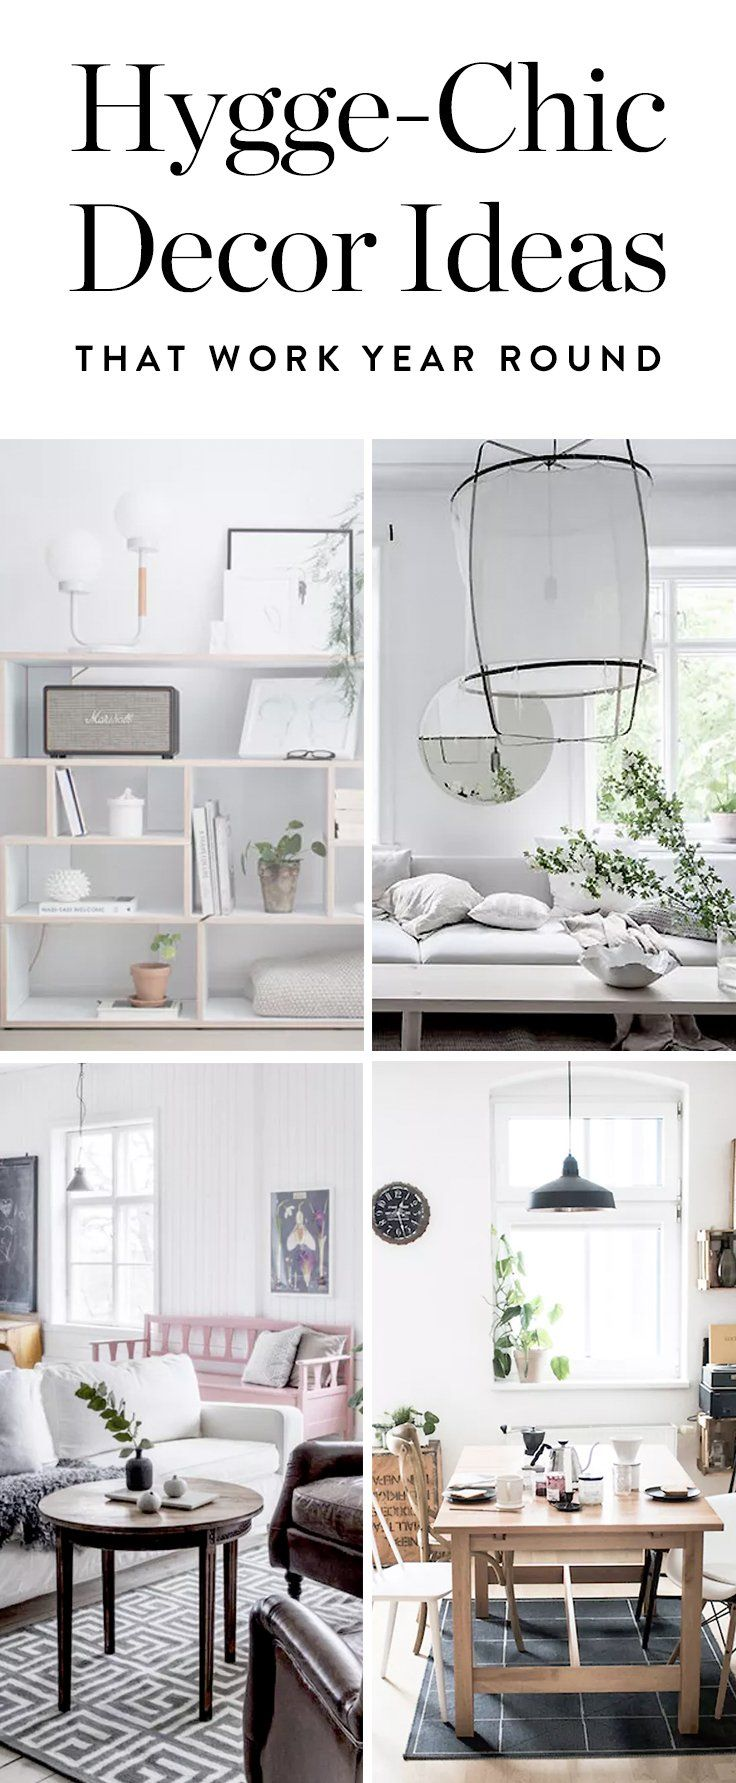 10 hygge chic styling ideas that work year round home on hygge wall decor id=88656